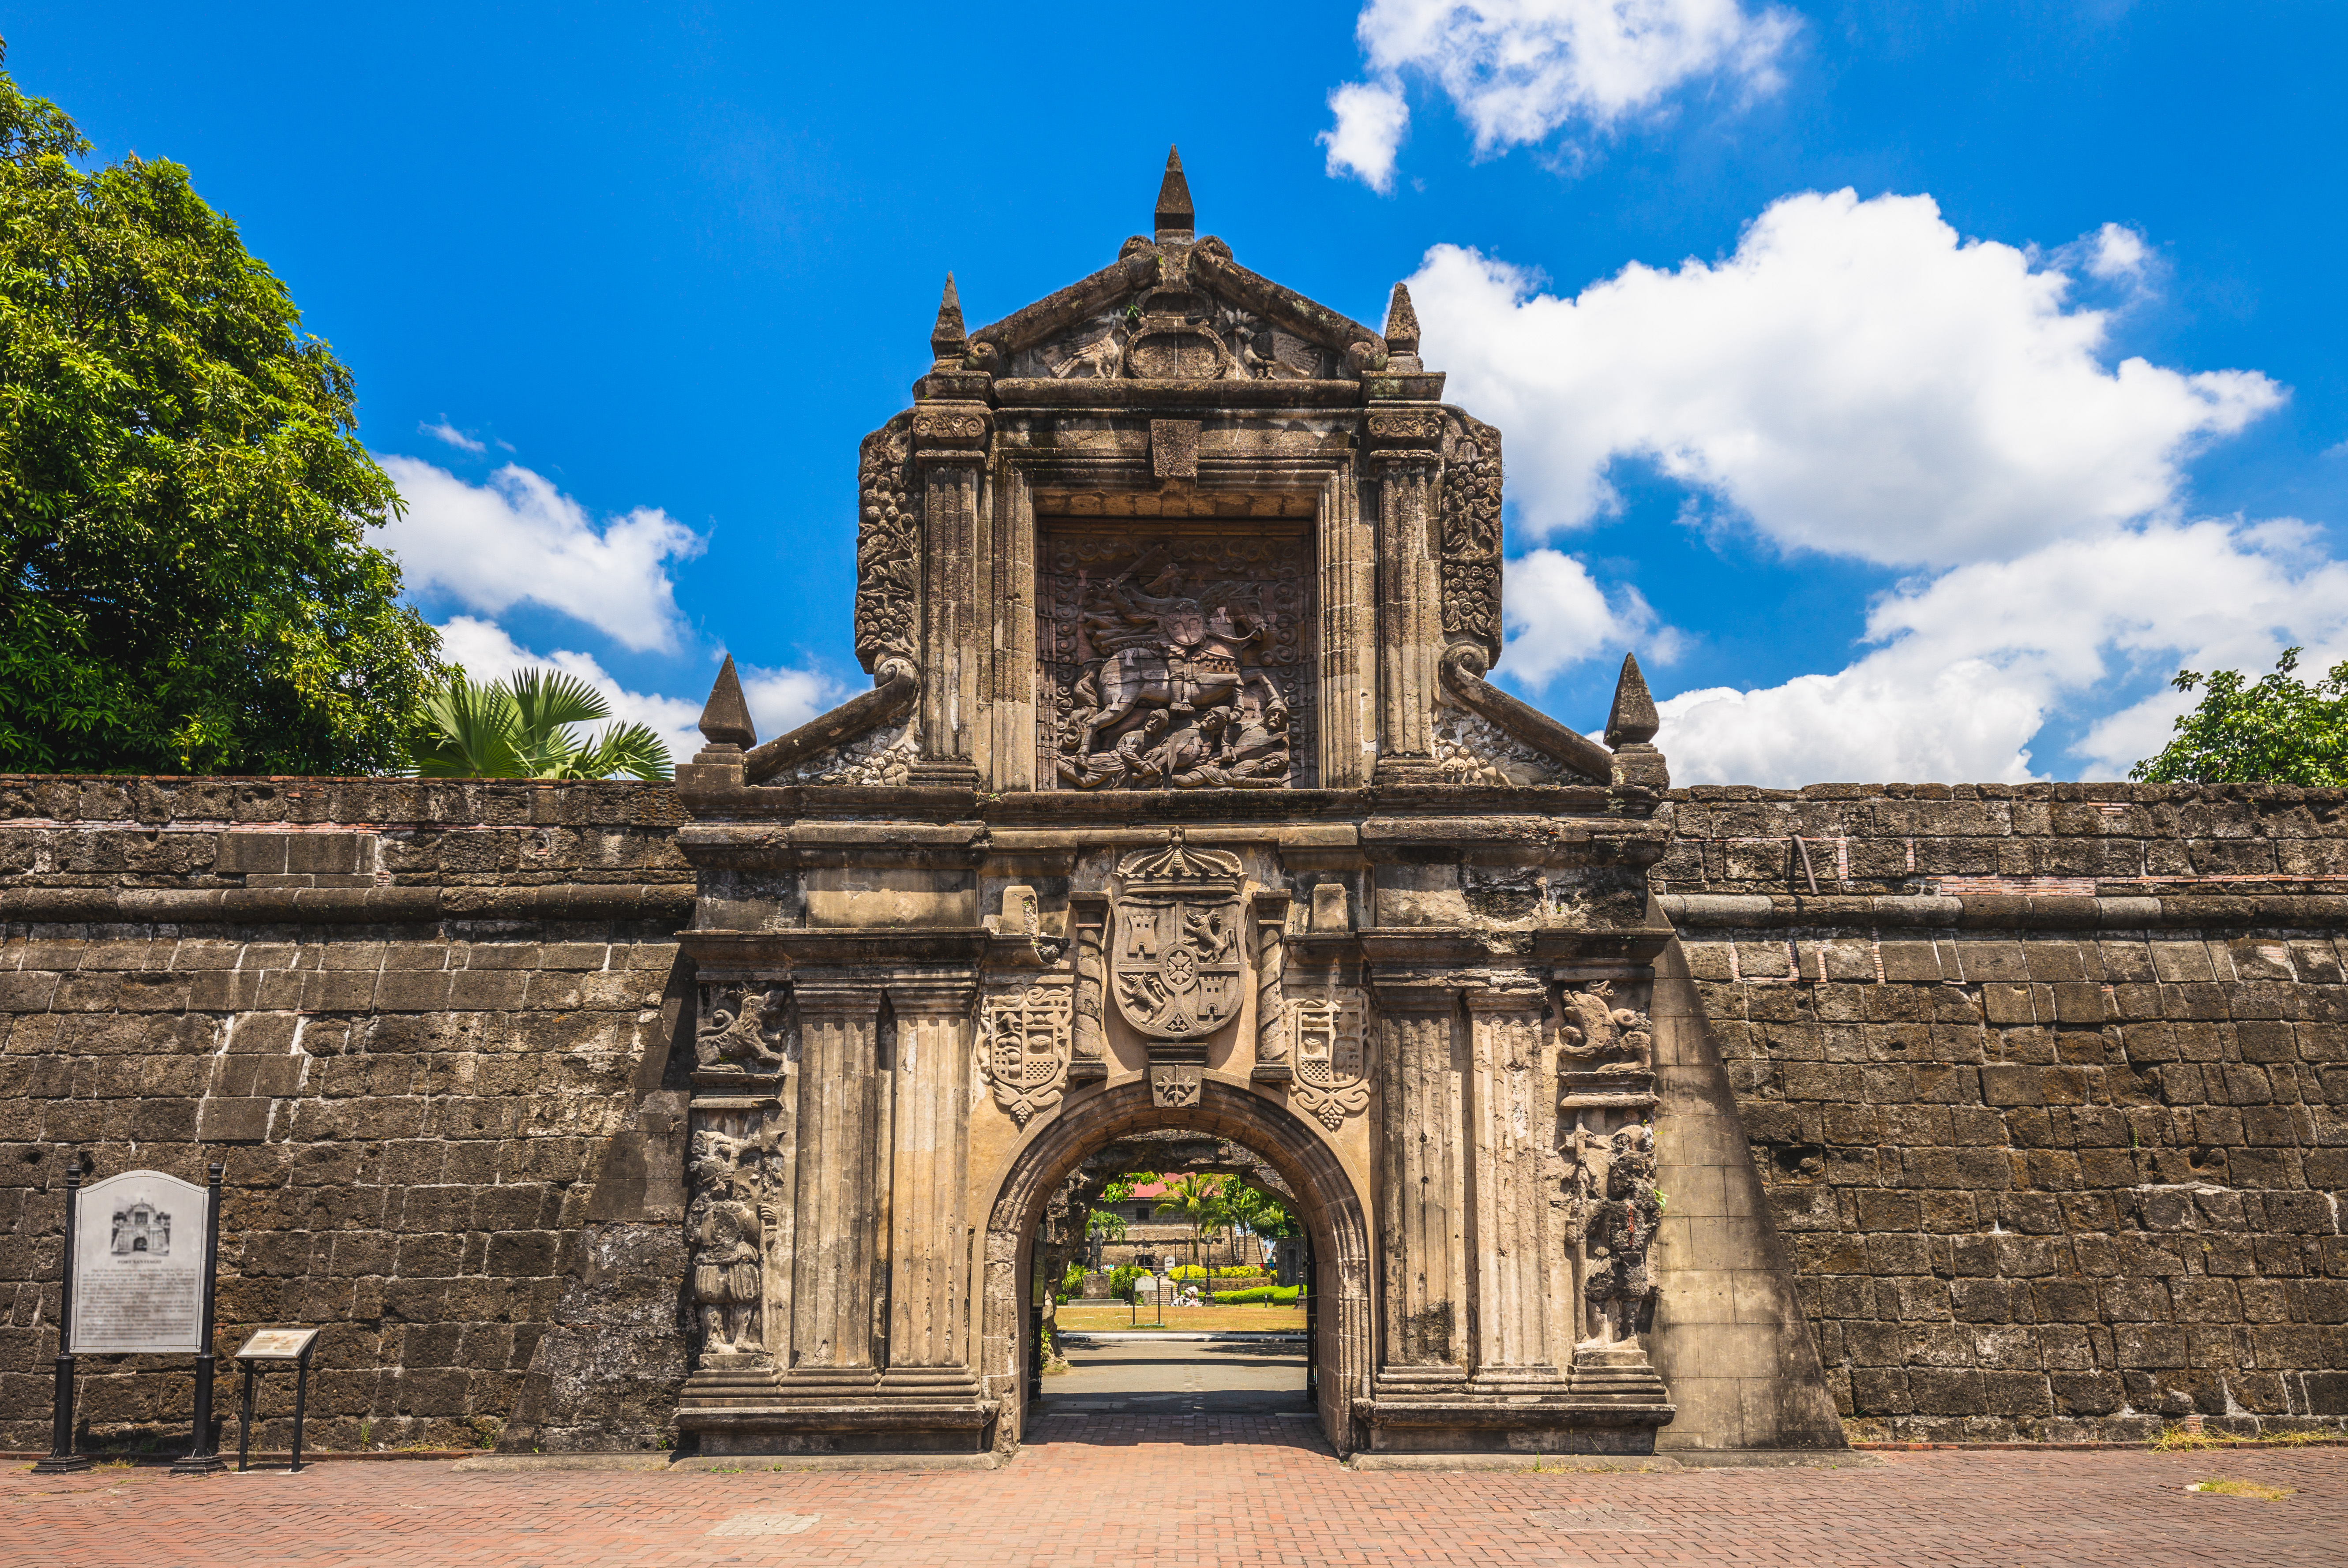 Stone structure of Fort Santiago in Intramuros